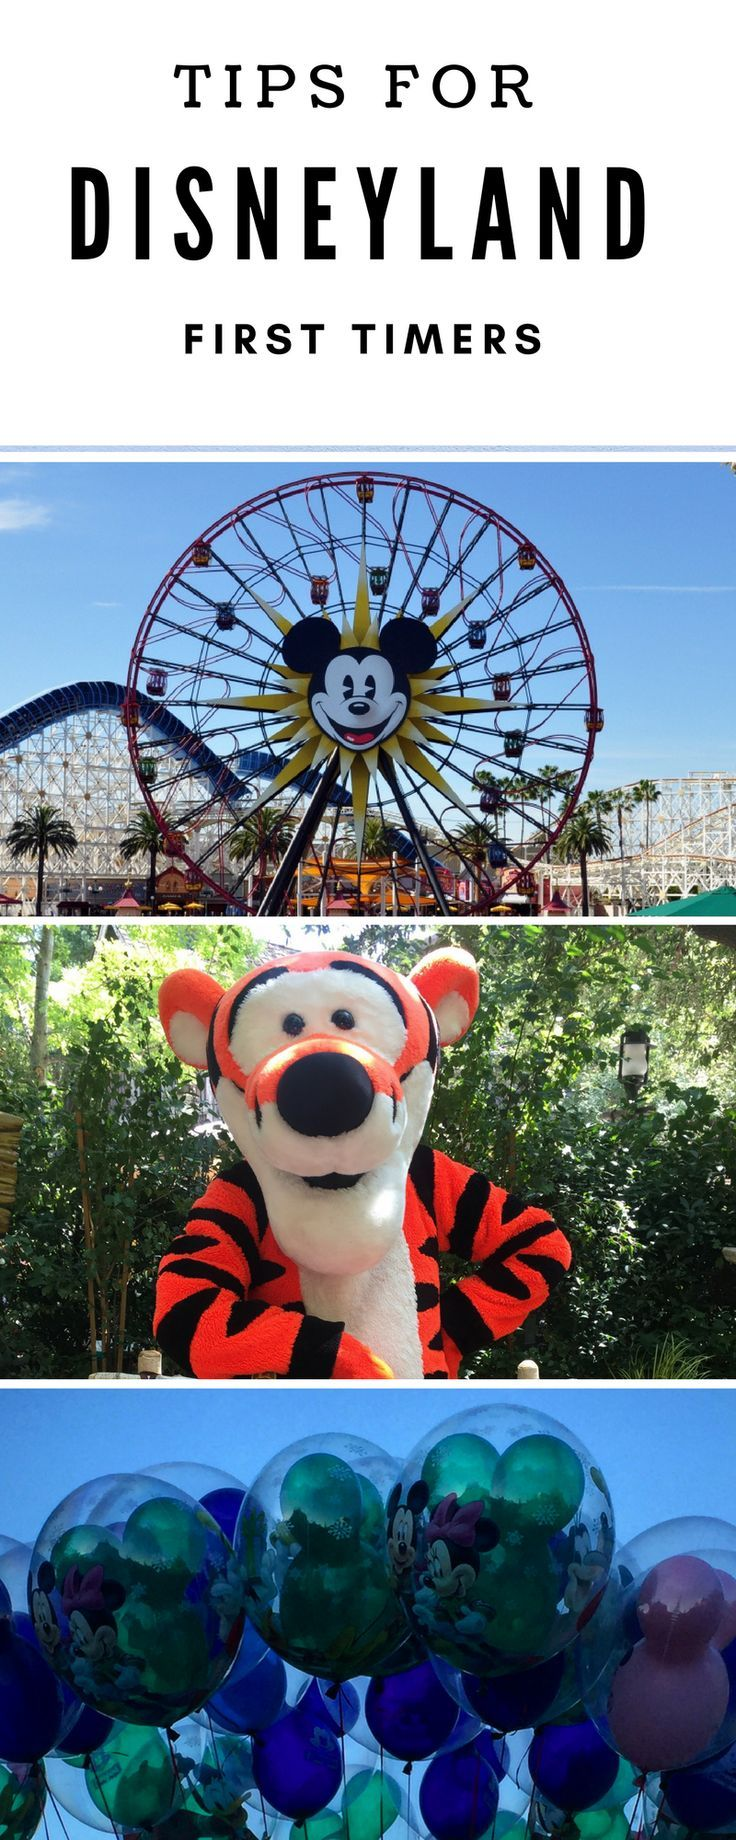 Tips for Disneyland first timers. Pre-trip planning for a trip with toddlers. #disneyland #california